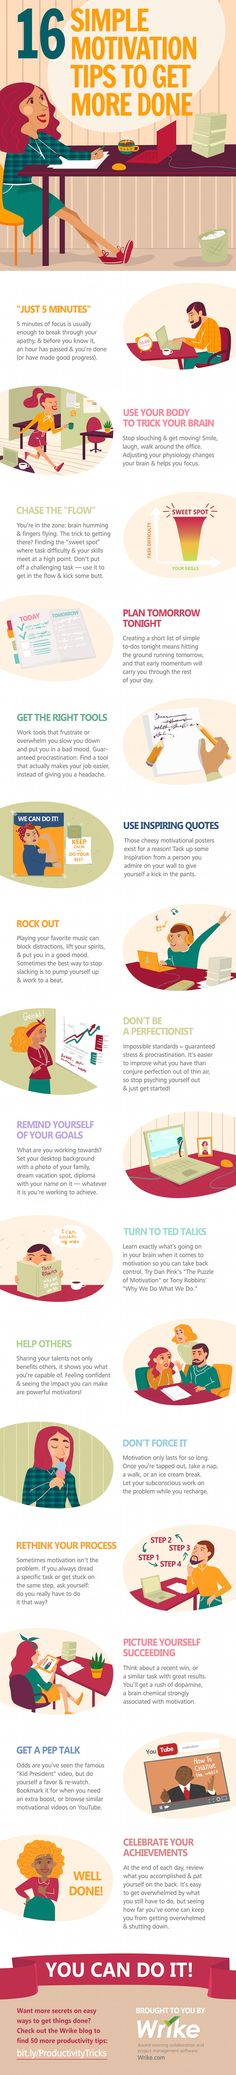 16 Easy-To-Try Motivation Tips To Get More Done